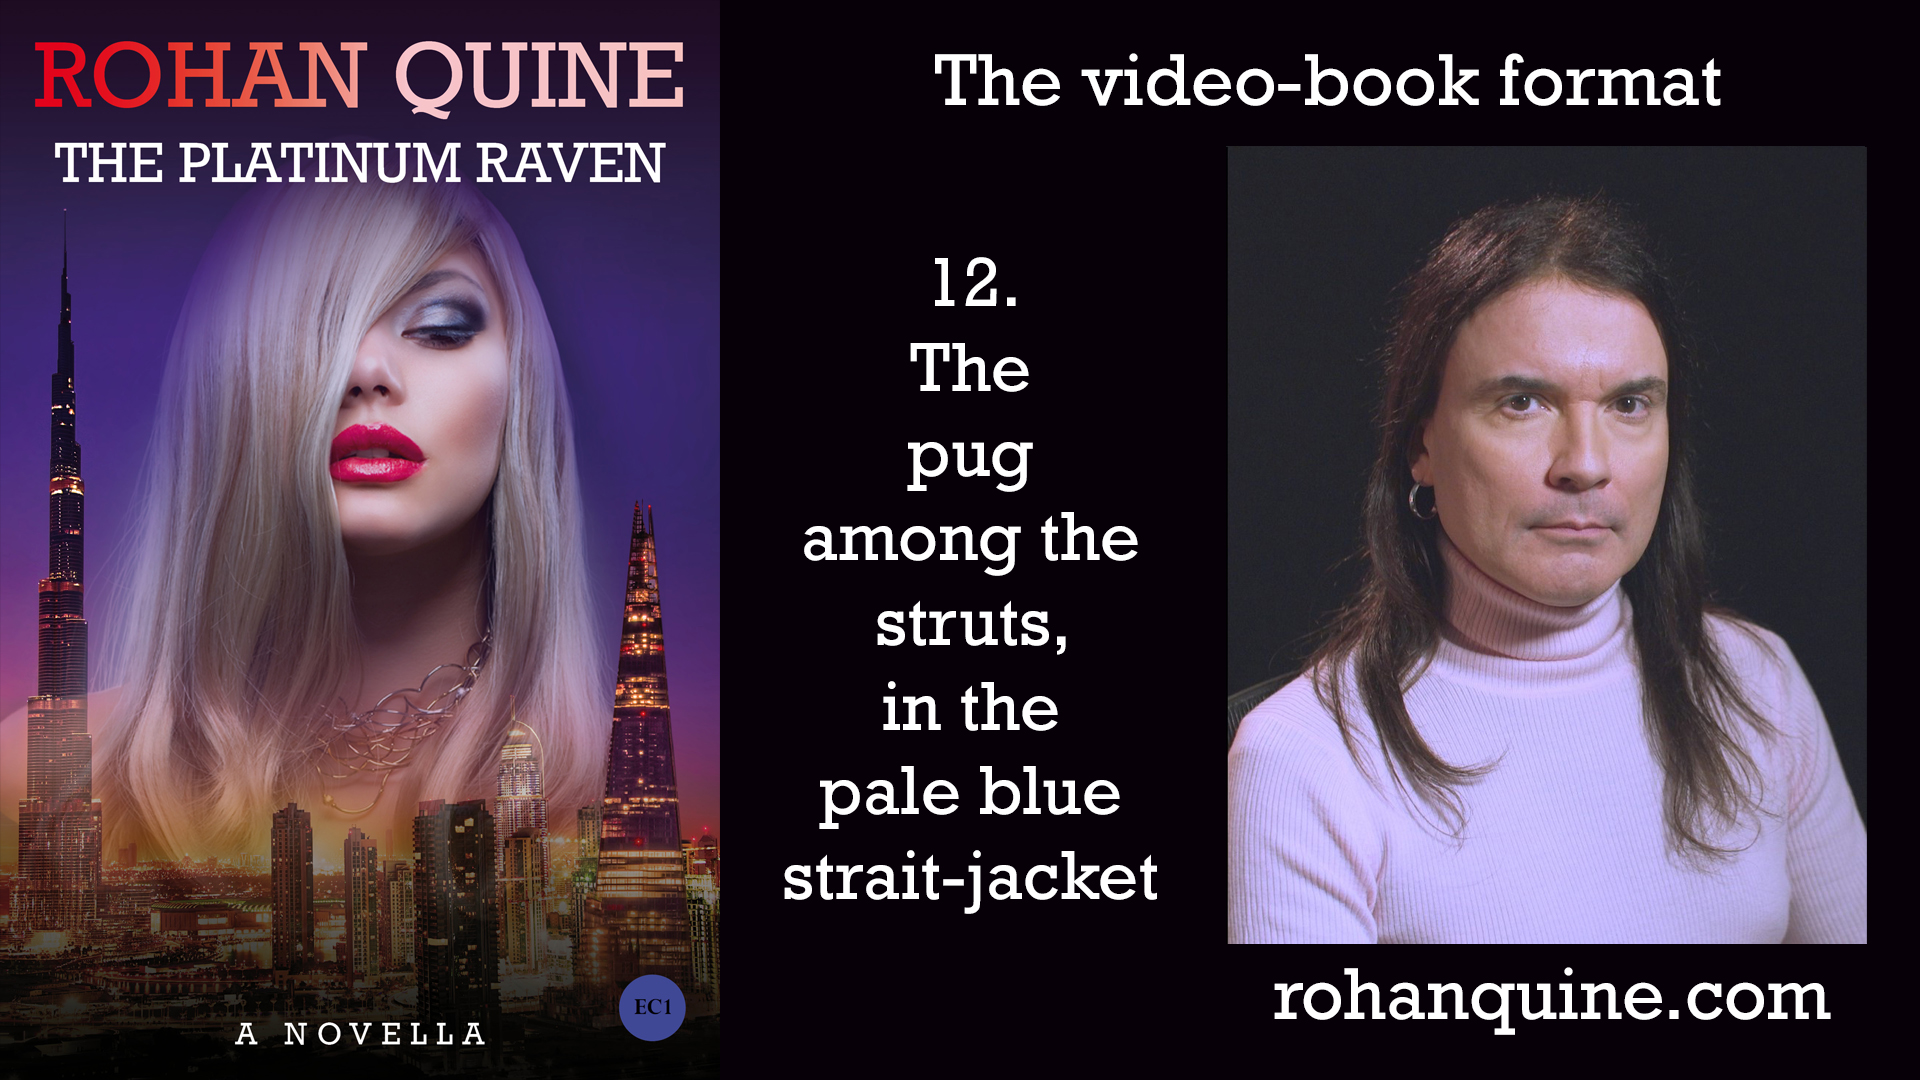 THE PLATINUM RAVEN by Rohan Quine - video-book format - chapter 12